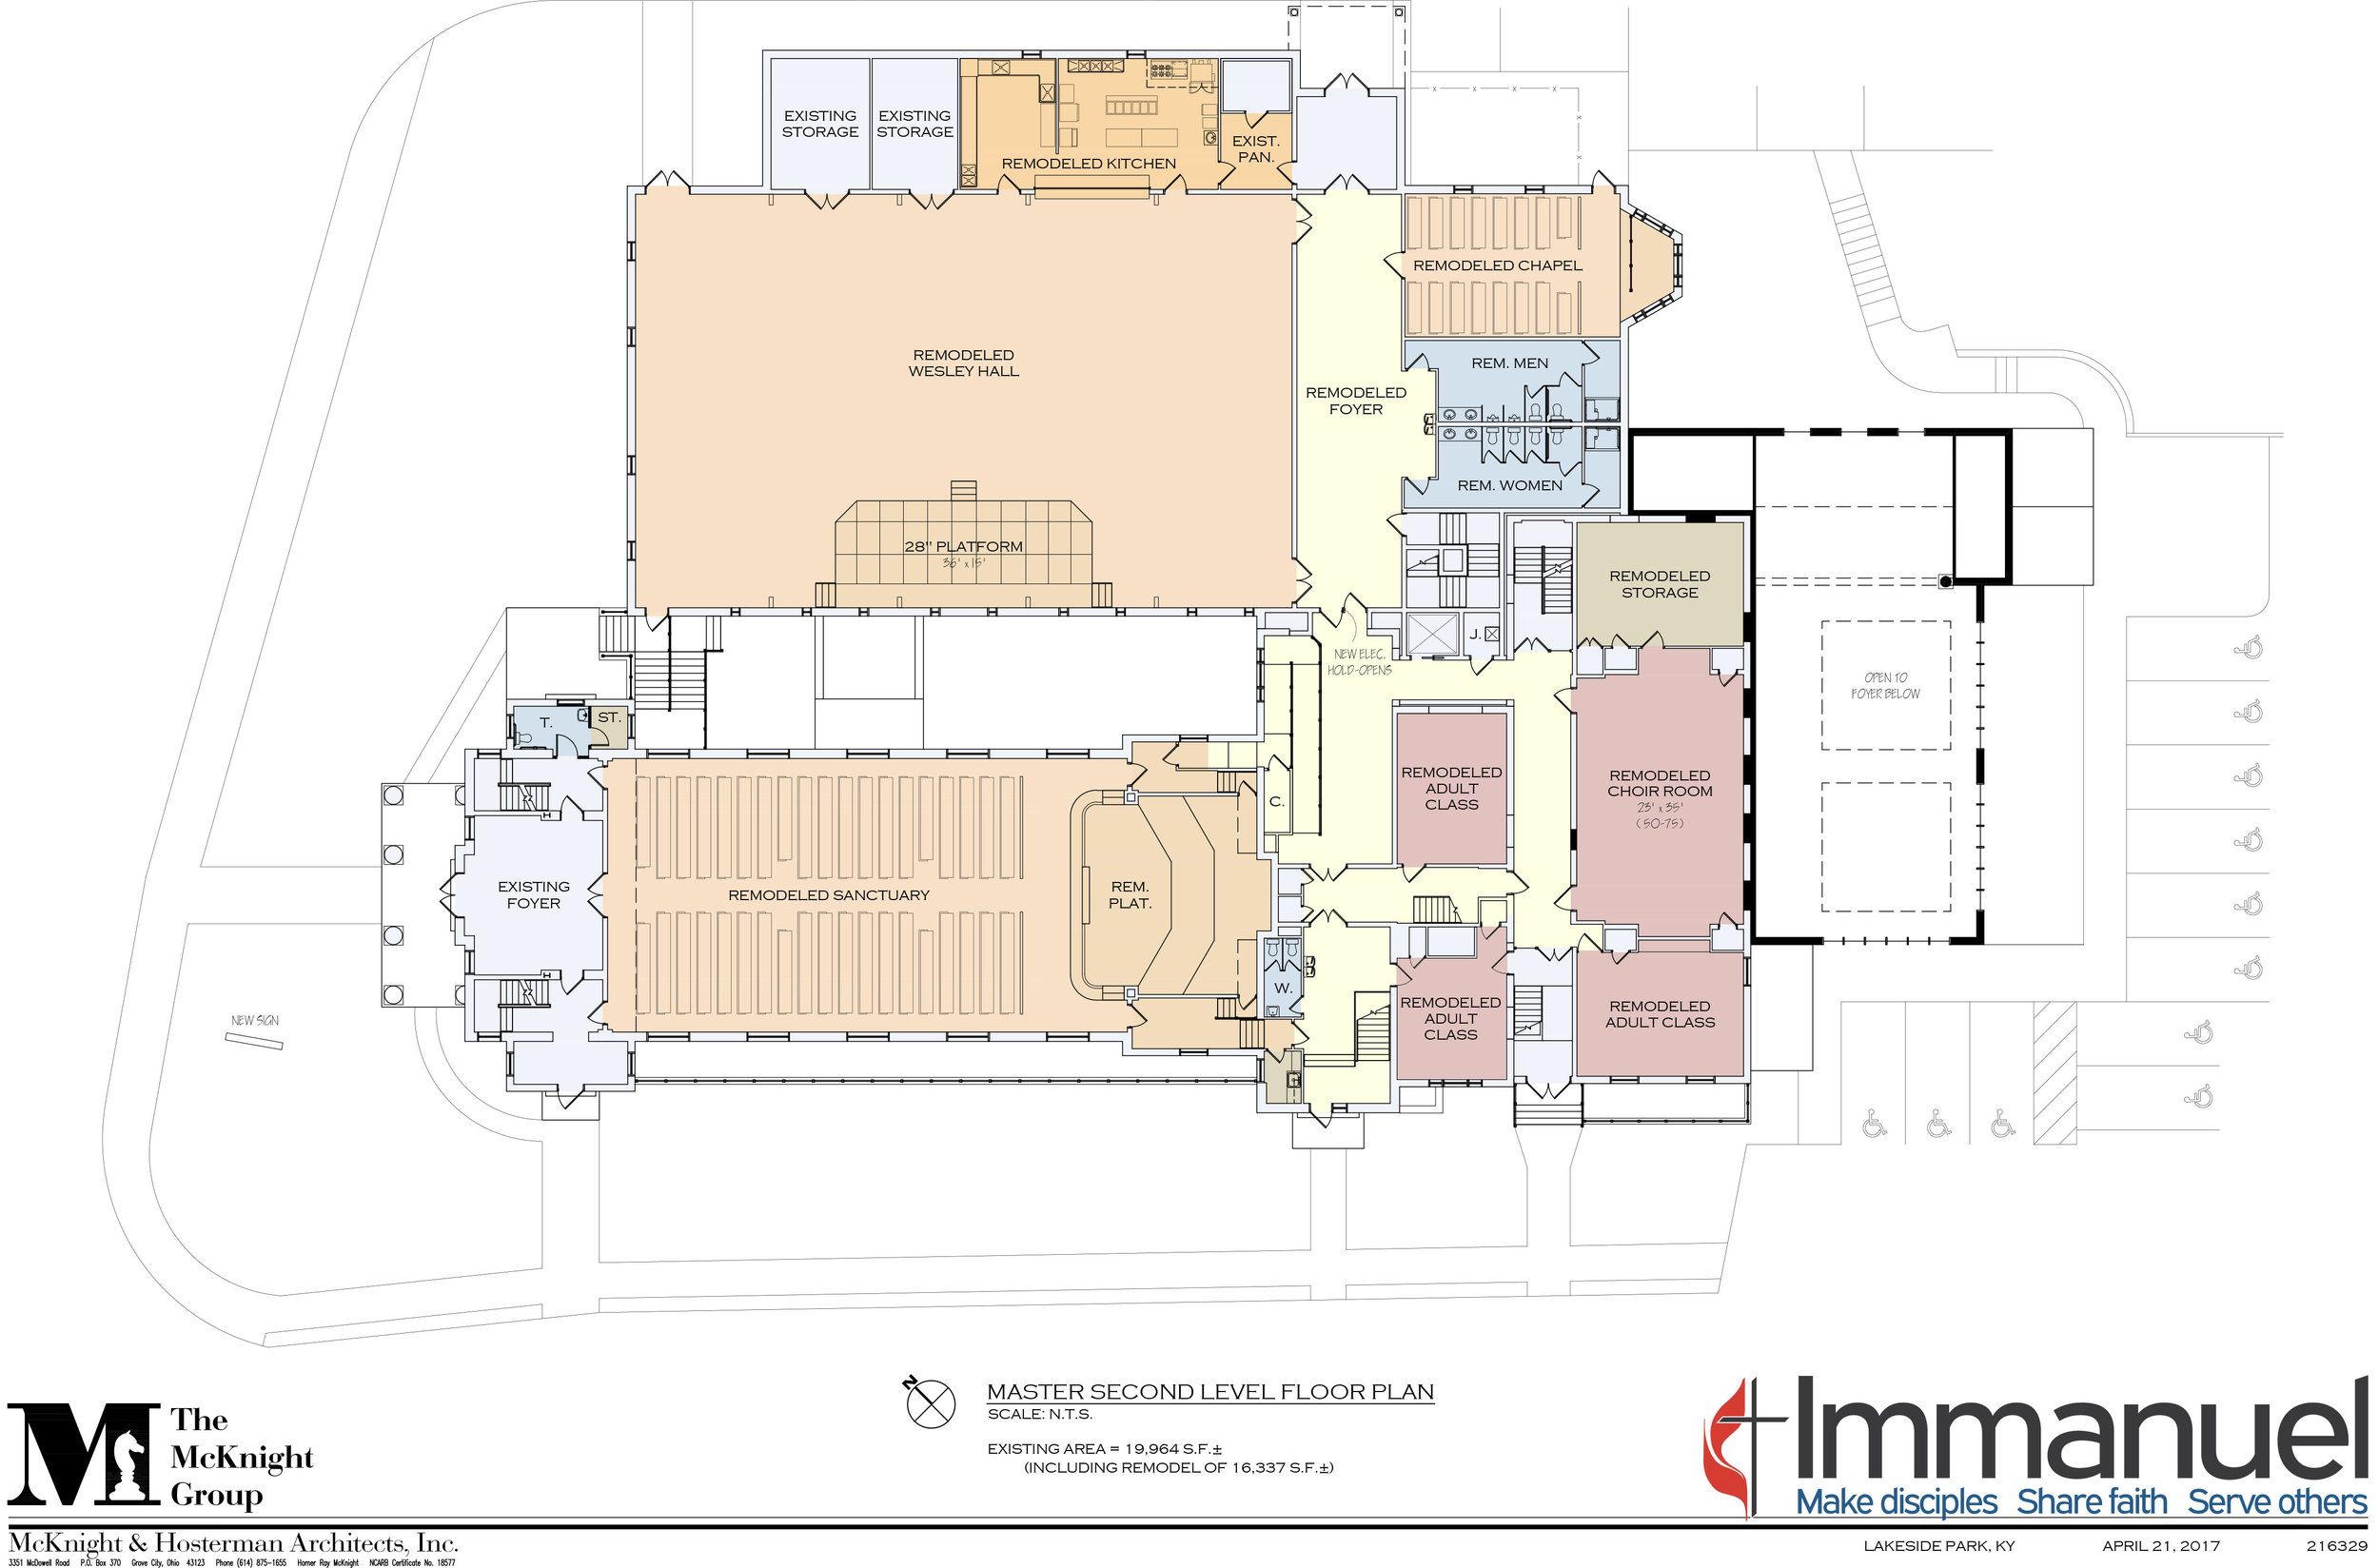 Proposed second floor renovations